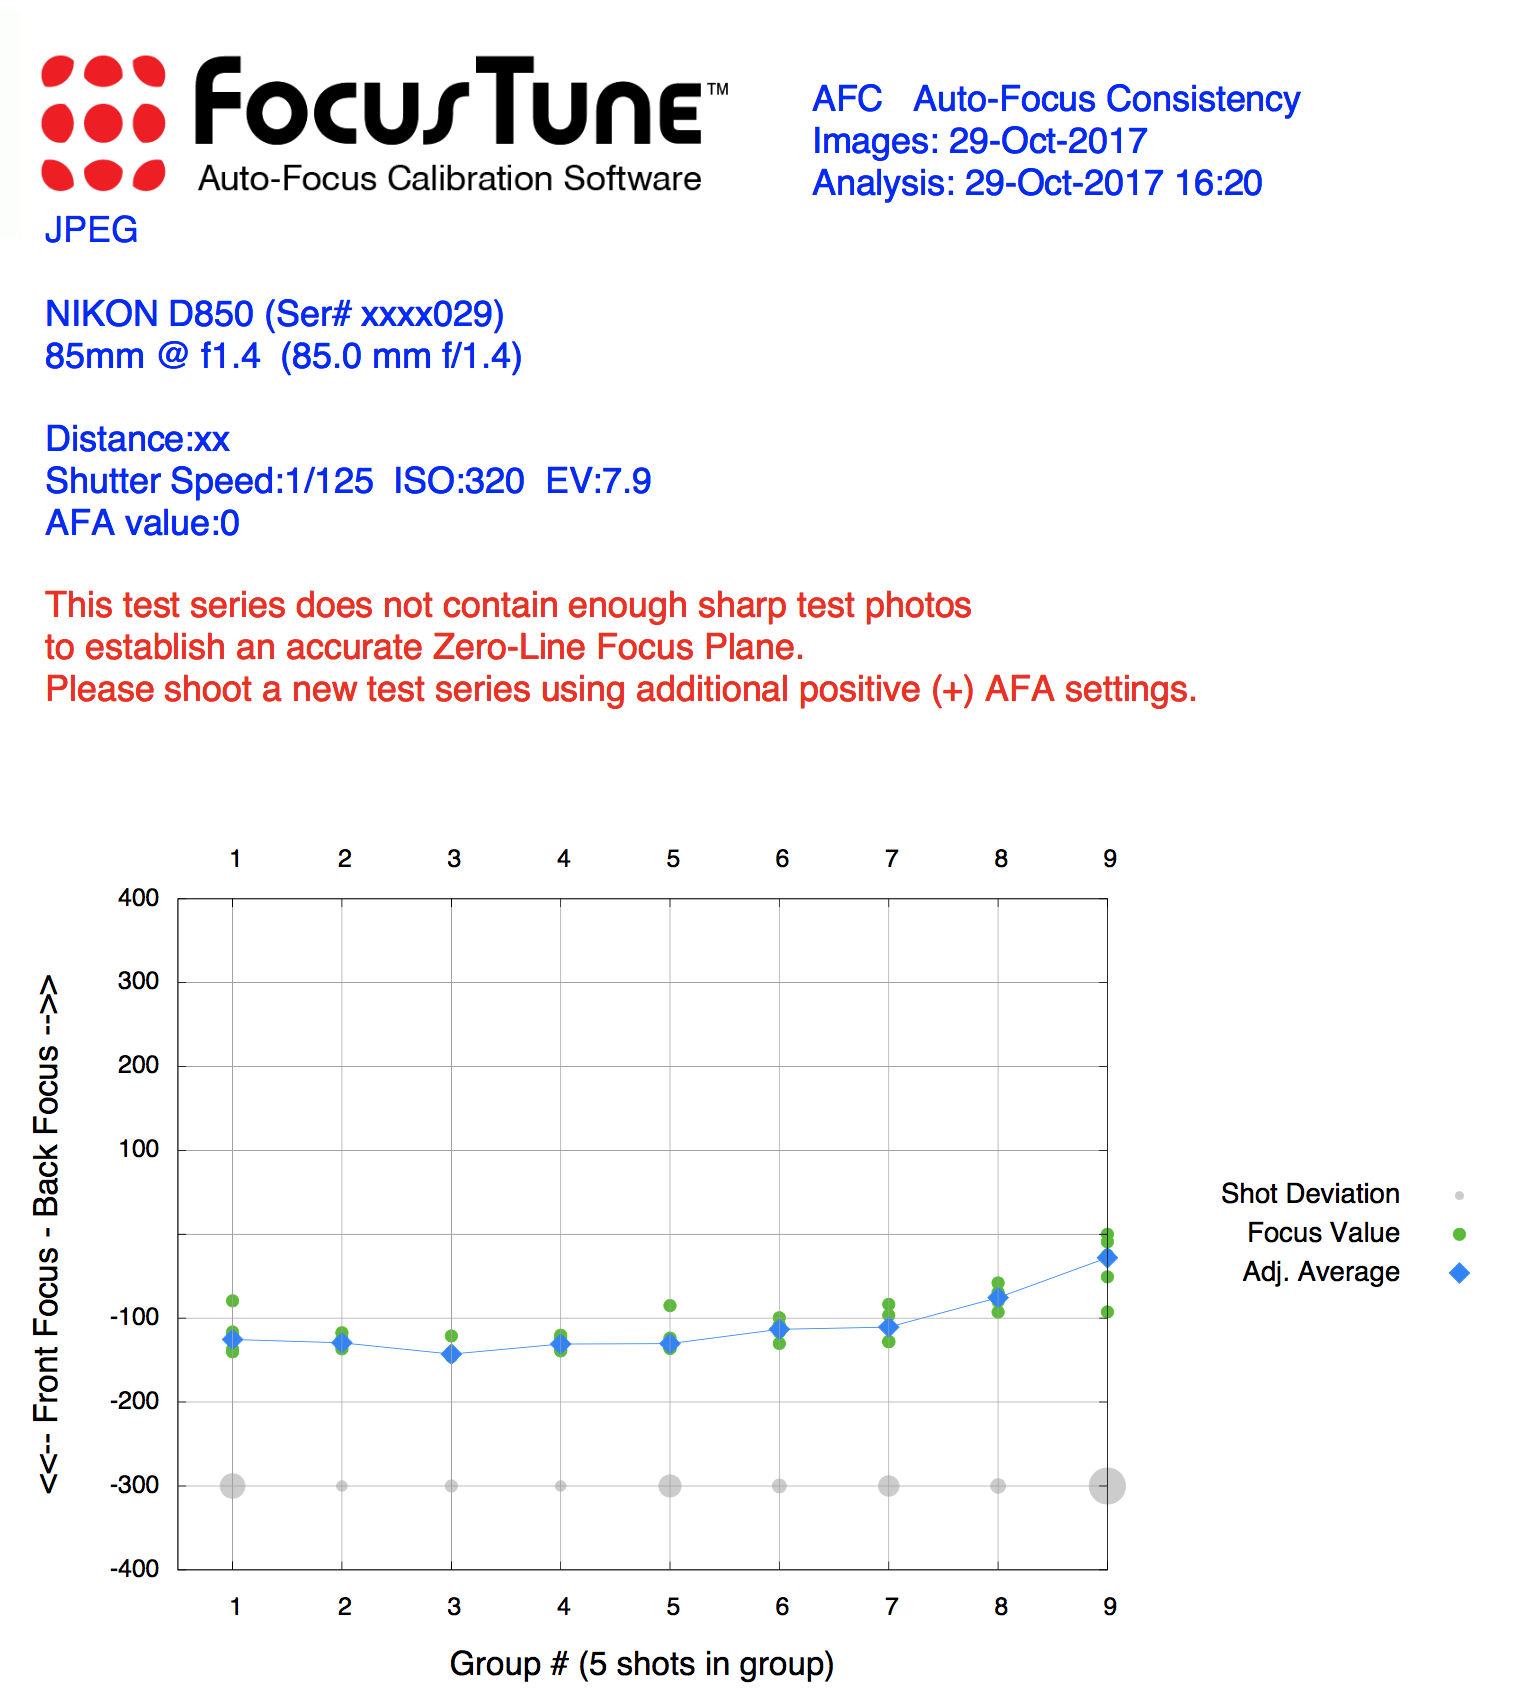 A screenshot of the output from the Focus Tune software. The graphic depicts that most of the shots have a front focus issue, but that the last cluster of images are very close to accurate on the sharpness. After additional refinement, it was determined an adjustment of +20 was best for this particular lens.